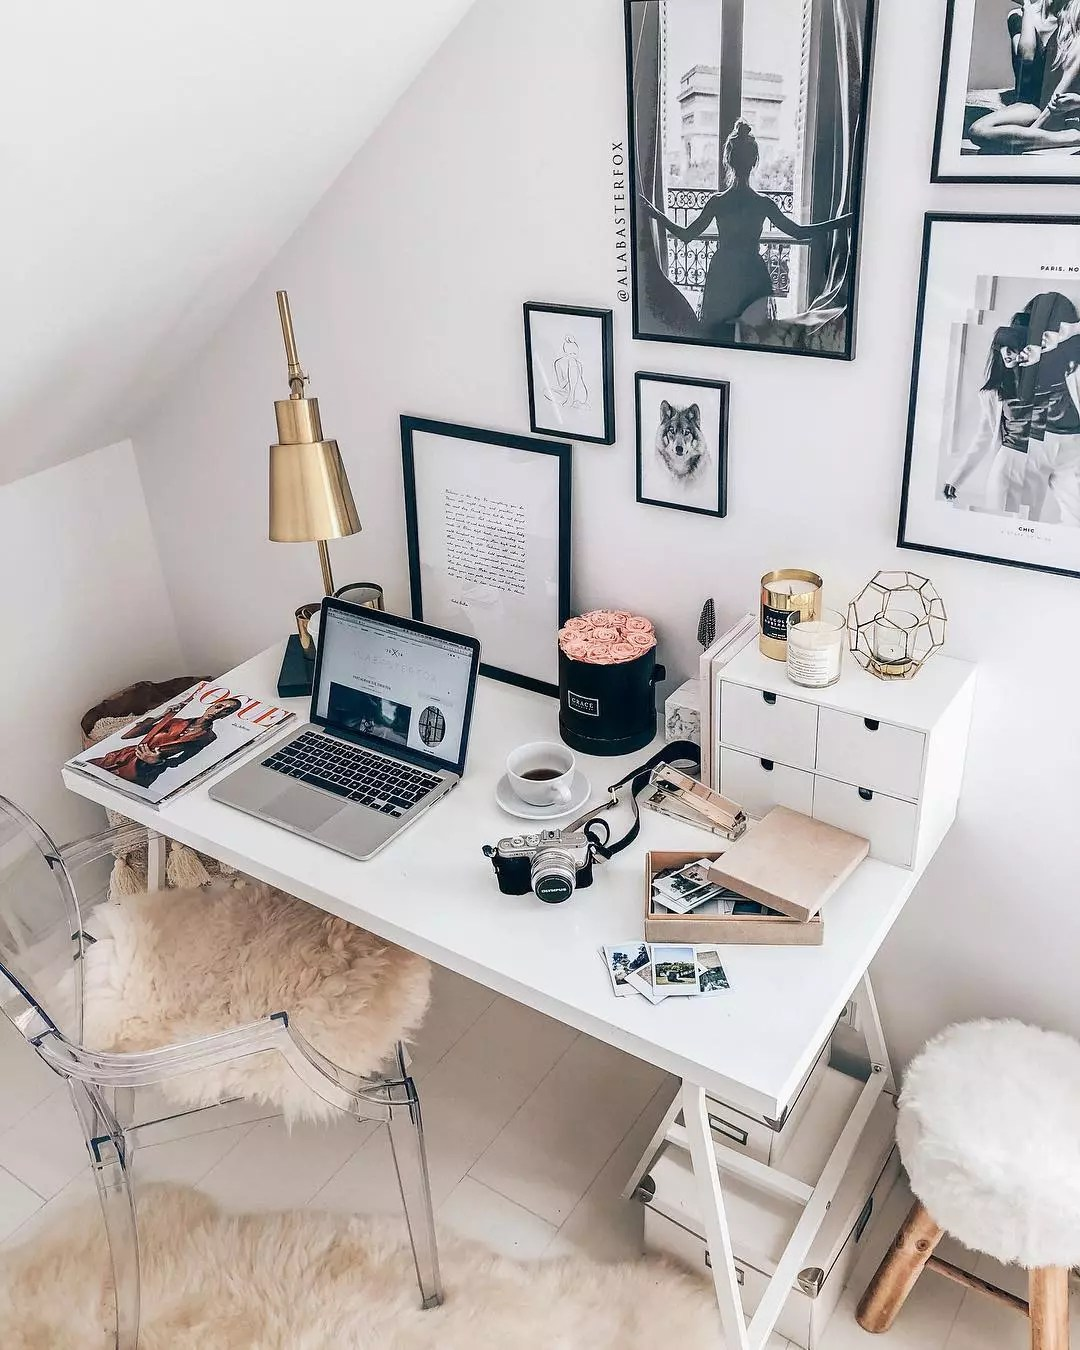 small white desk and clear chair with gold lamp on the desk in tiny room photo by Instagram user @alabasterfox